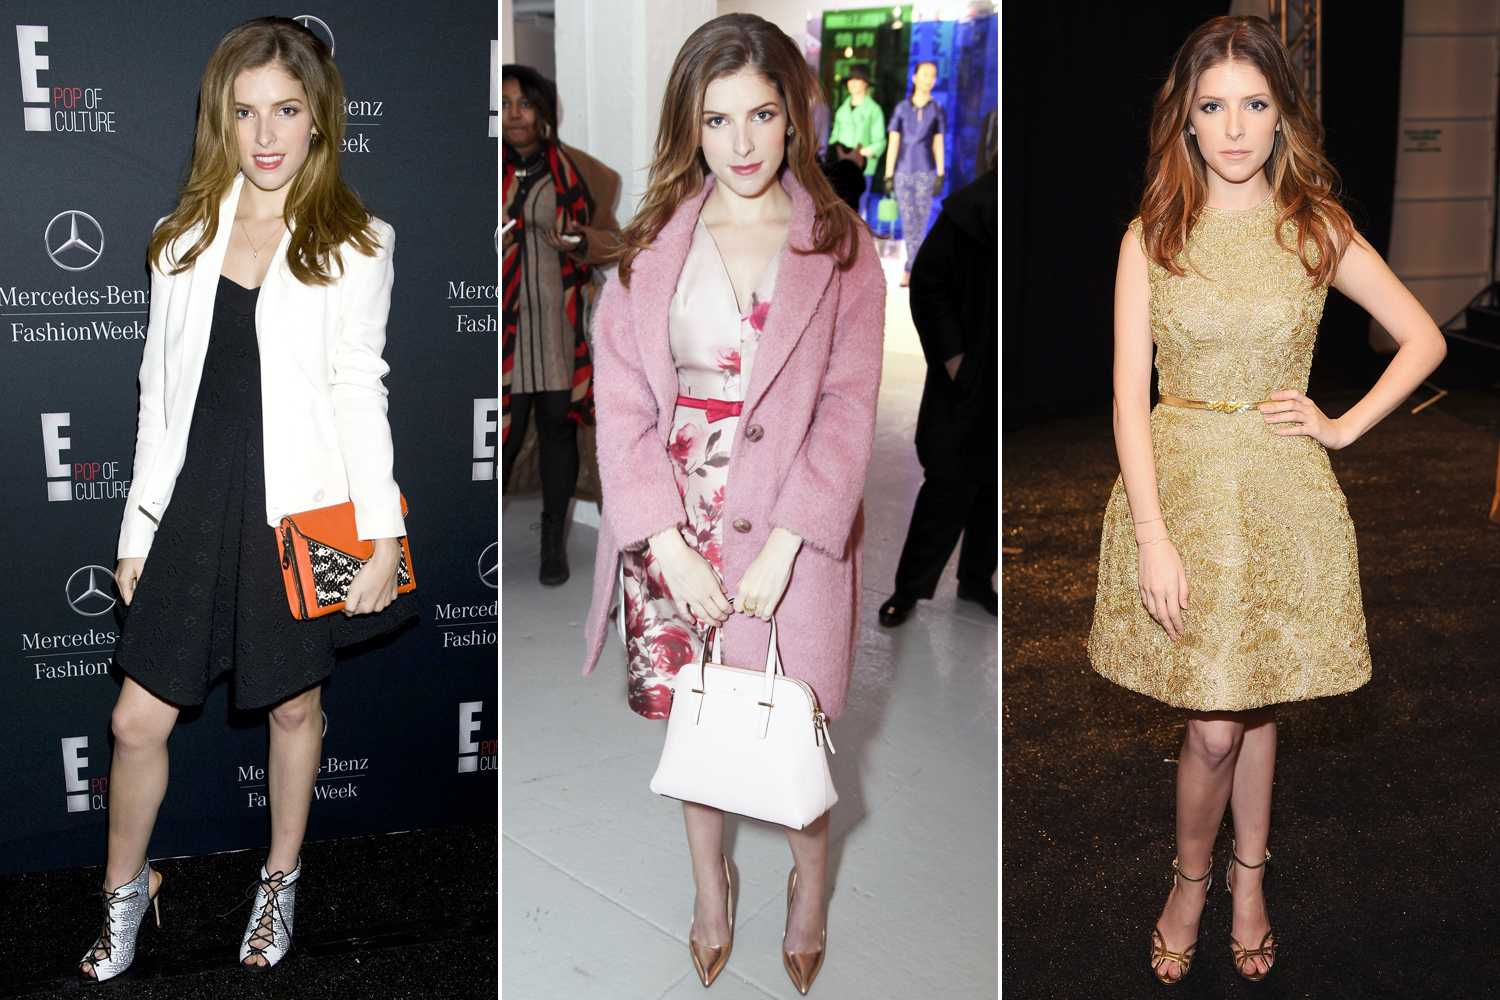 Anna Kendrick Looks Pitch Perfect During New York Fashion Week